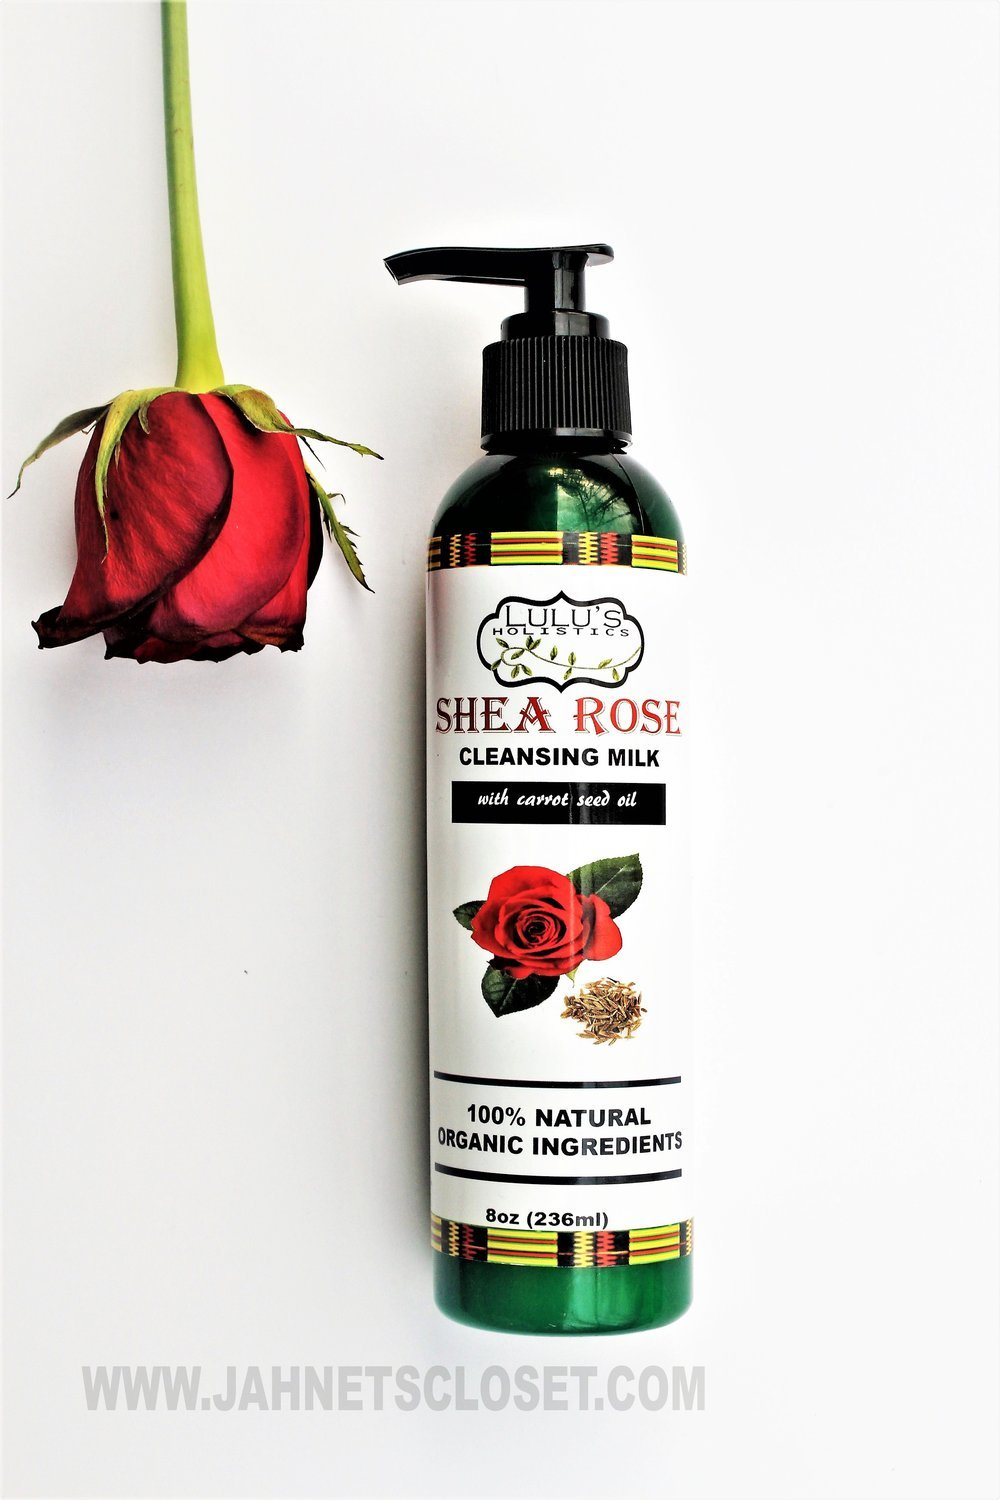 Shea-Rose Face Cleansing Milk (with carrot seed oil)